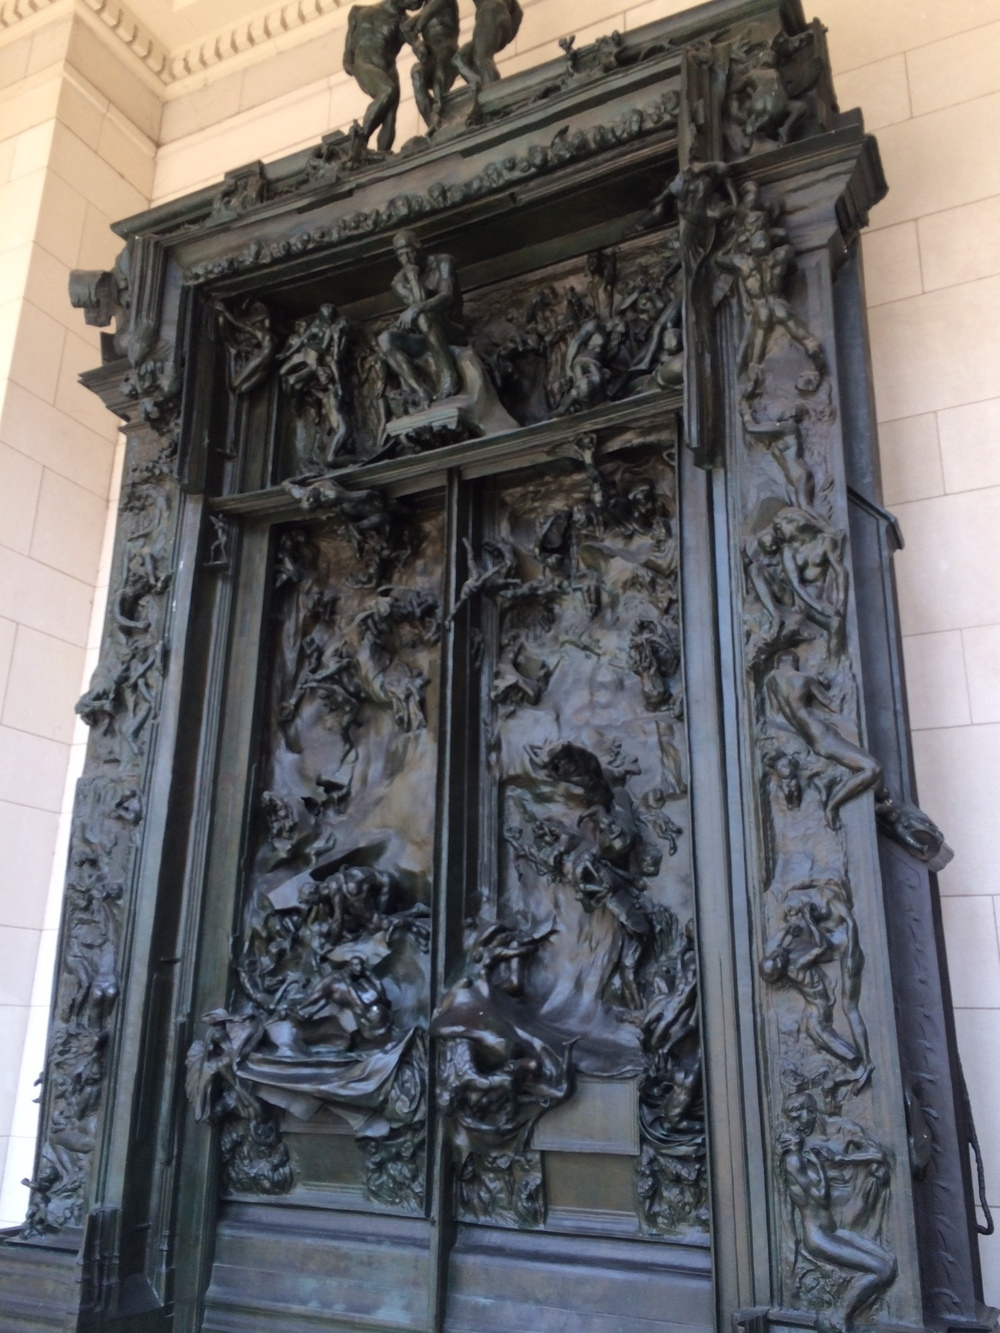 The Gates of Hell: they were not made to open...